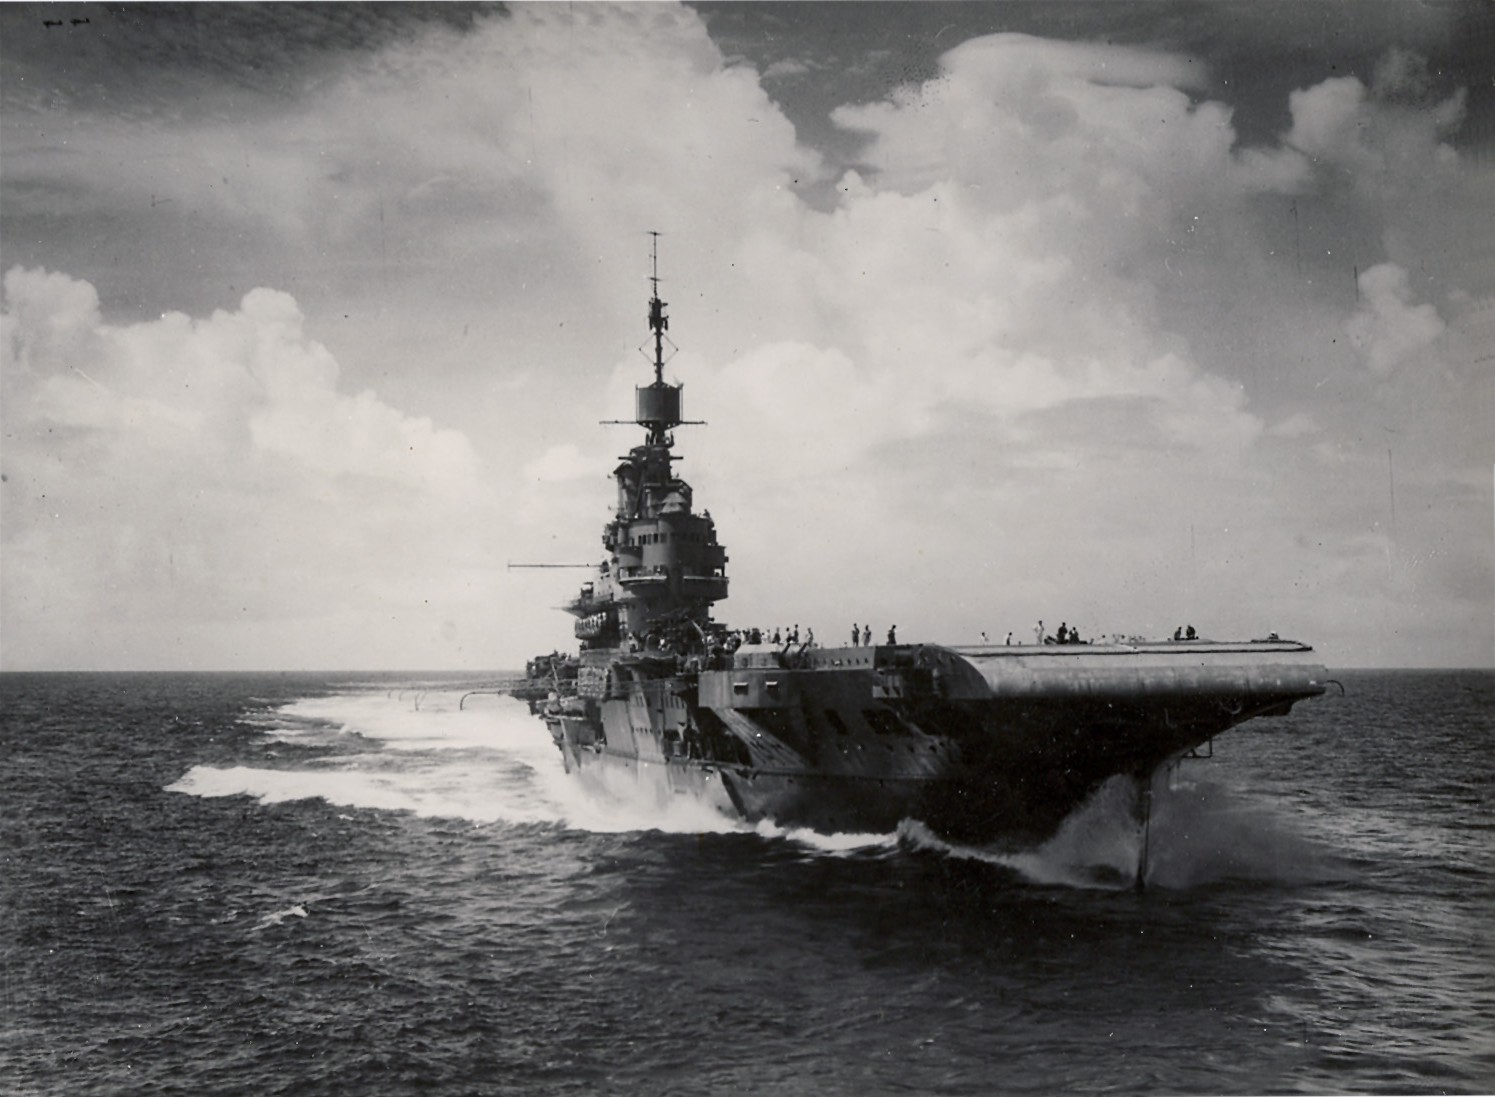 The 1940s HMS Illustrious (R87) sailing in the Indian Ocean in 1944.  Courtesy of Wikimedia Commons.